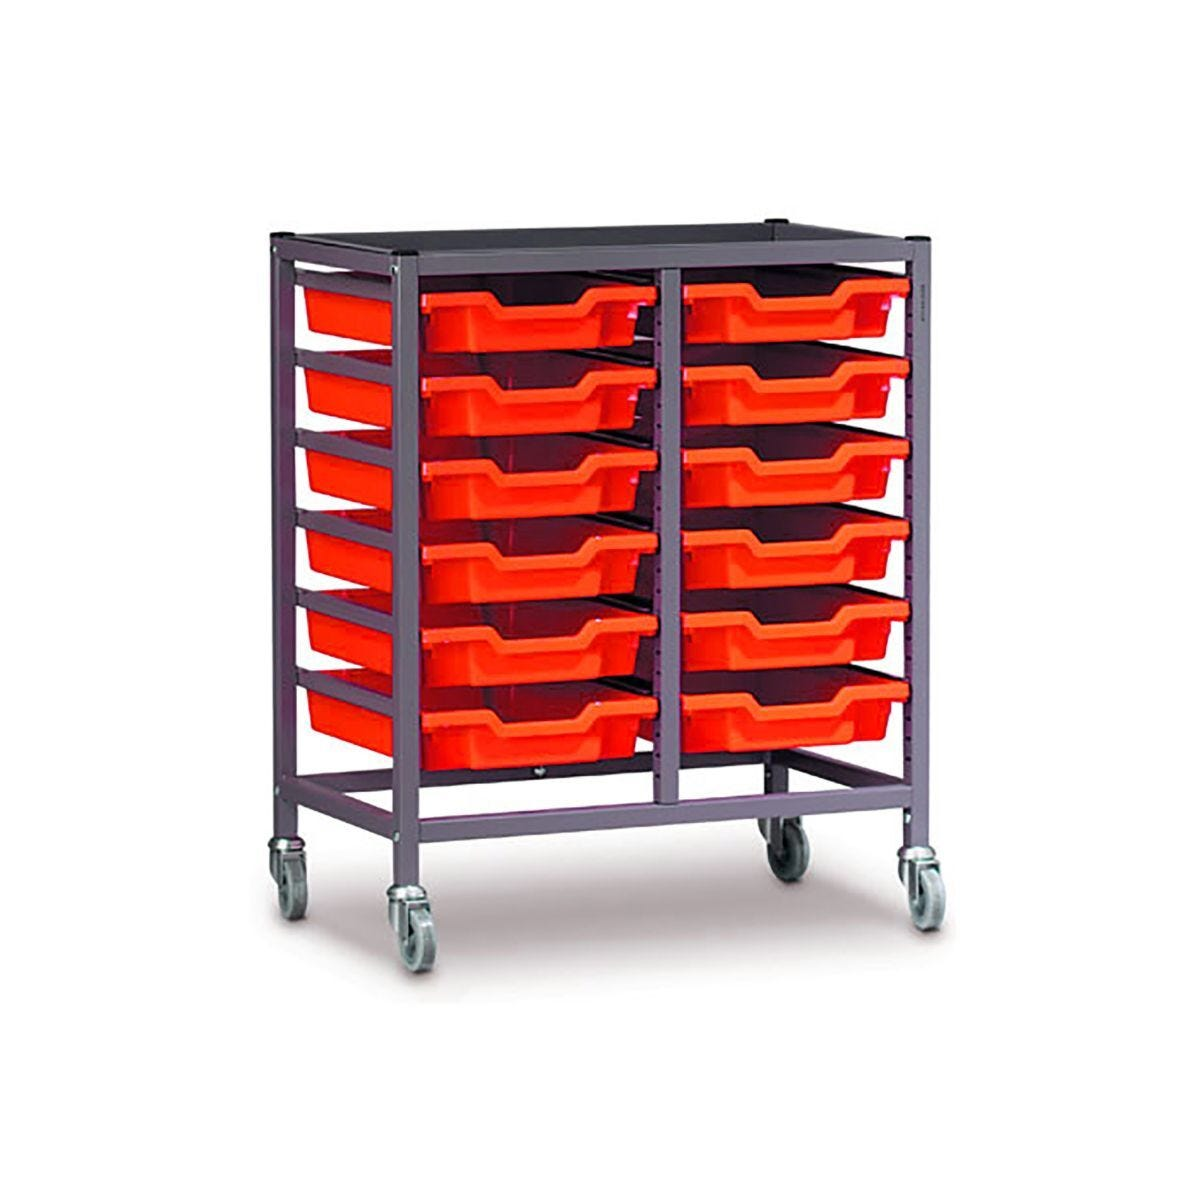 Gratnells Double Column Trolley 12 Tray